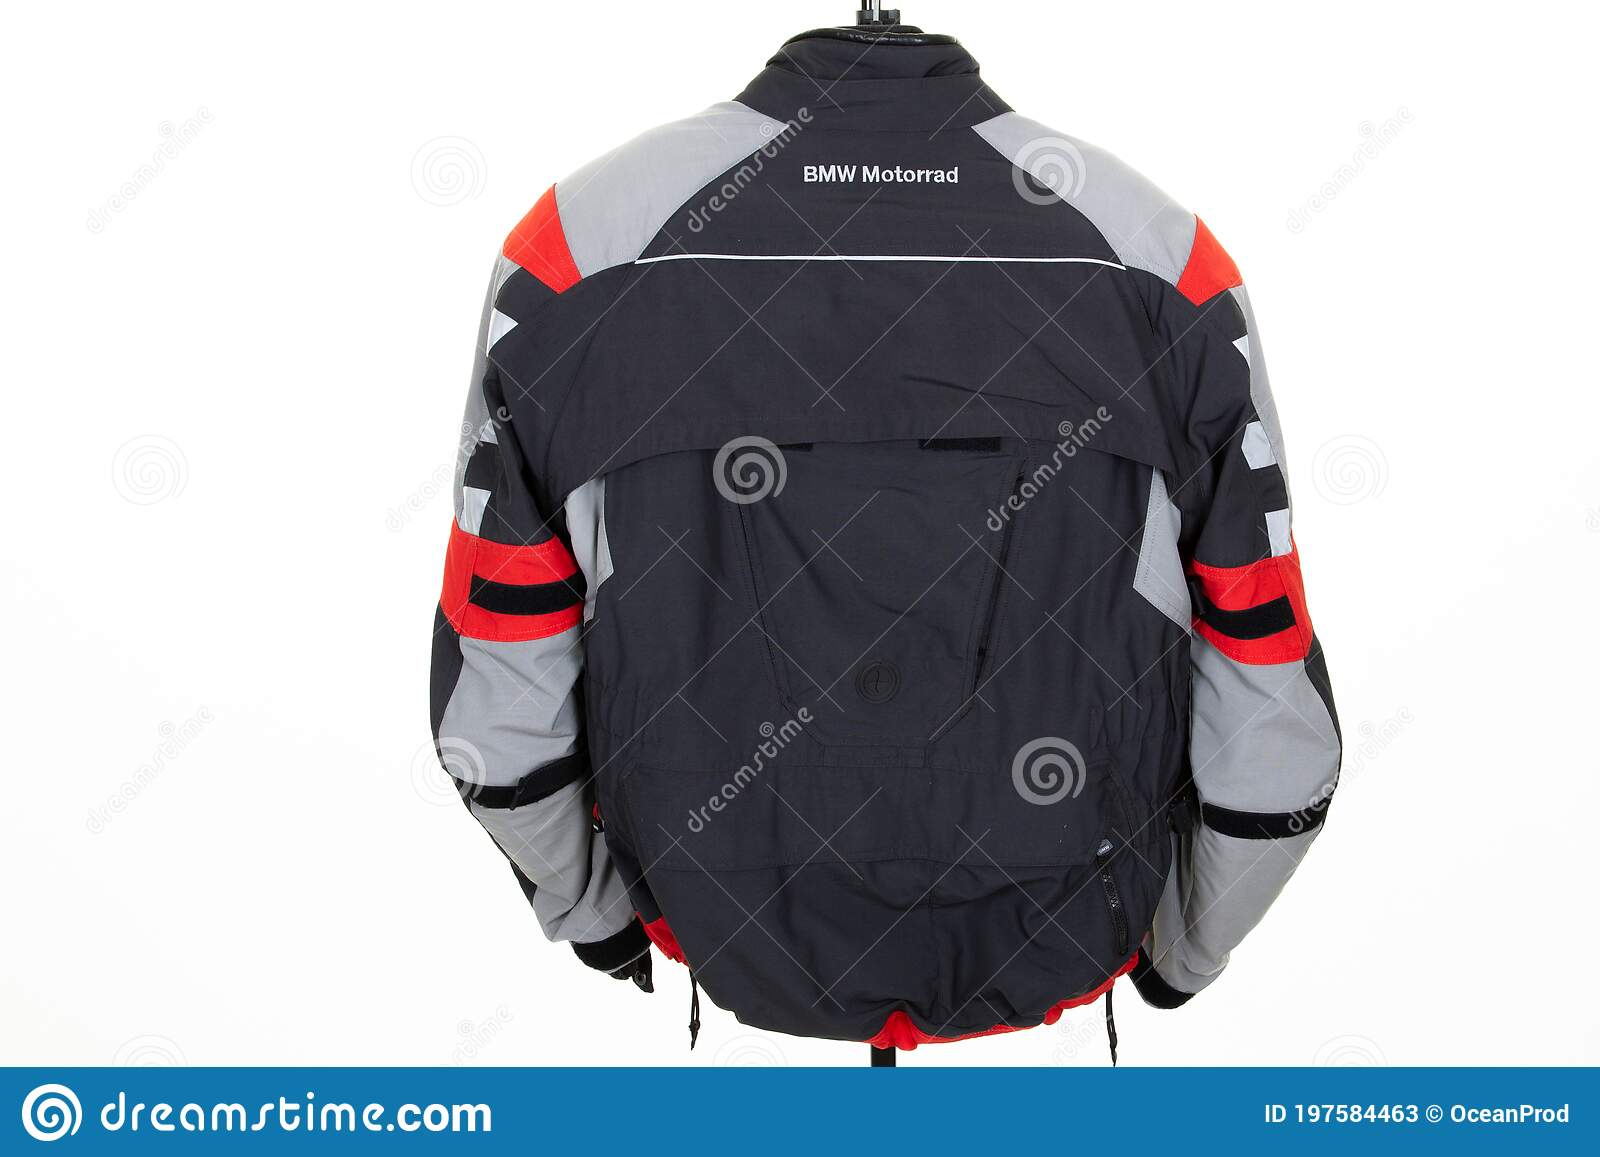 Bmw Motorrad Black Red And Grey Jacket Of Enduro Motorcycle In Back Rear View For Editorial Stock Photo Image Of Jacket Famous 197584463